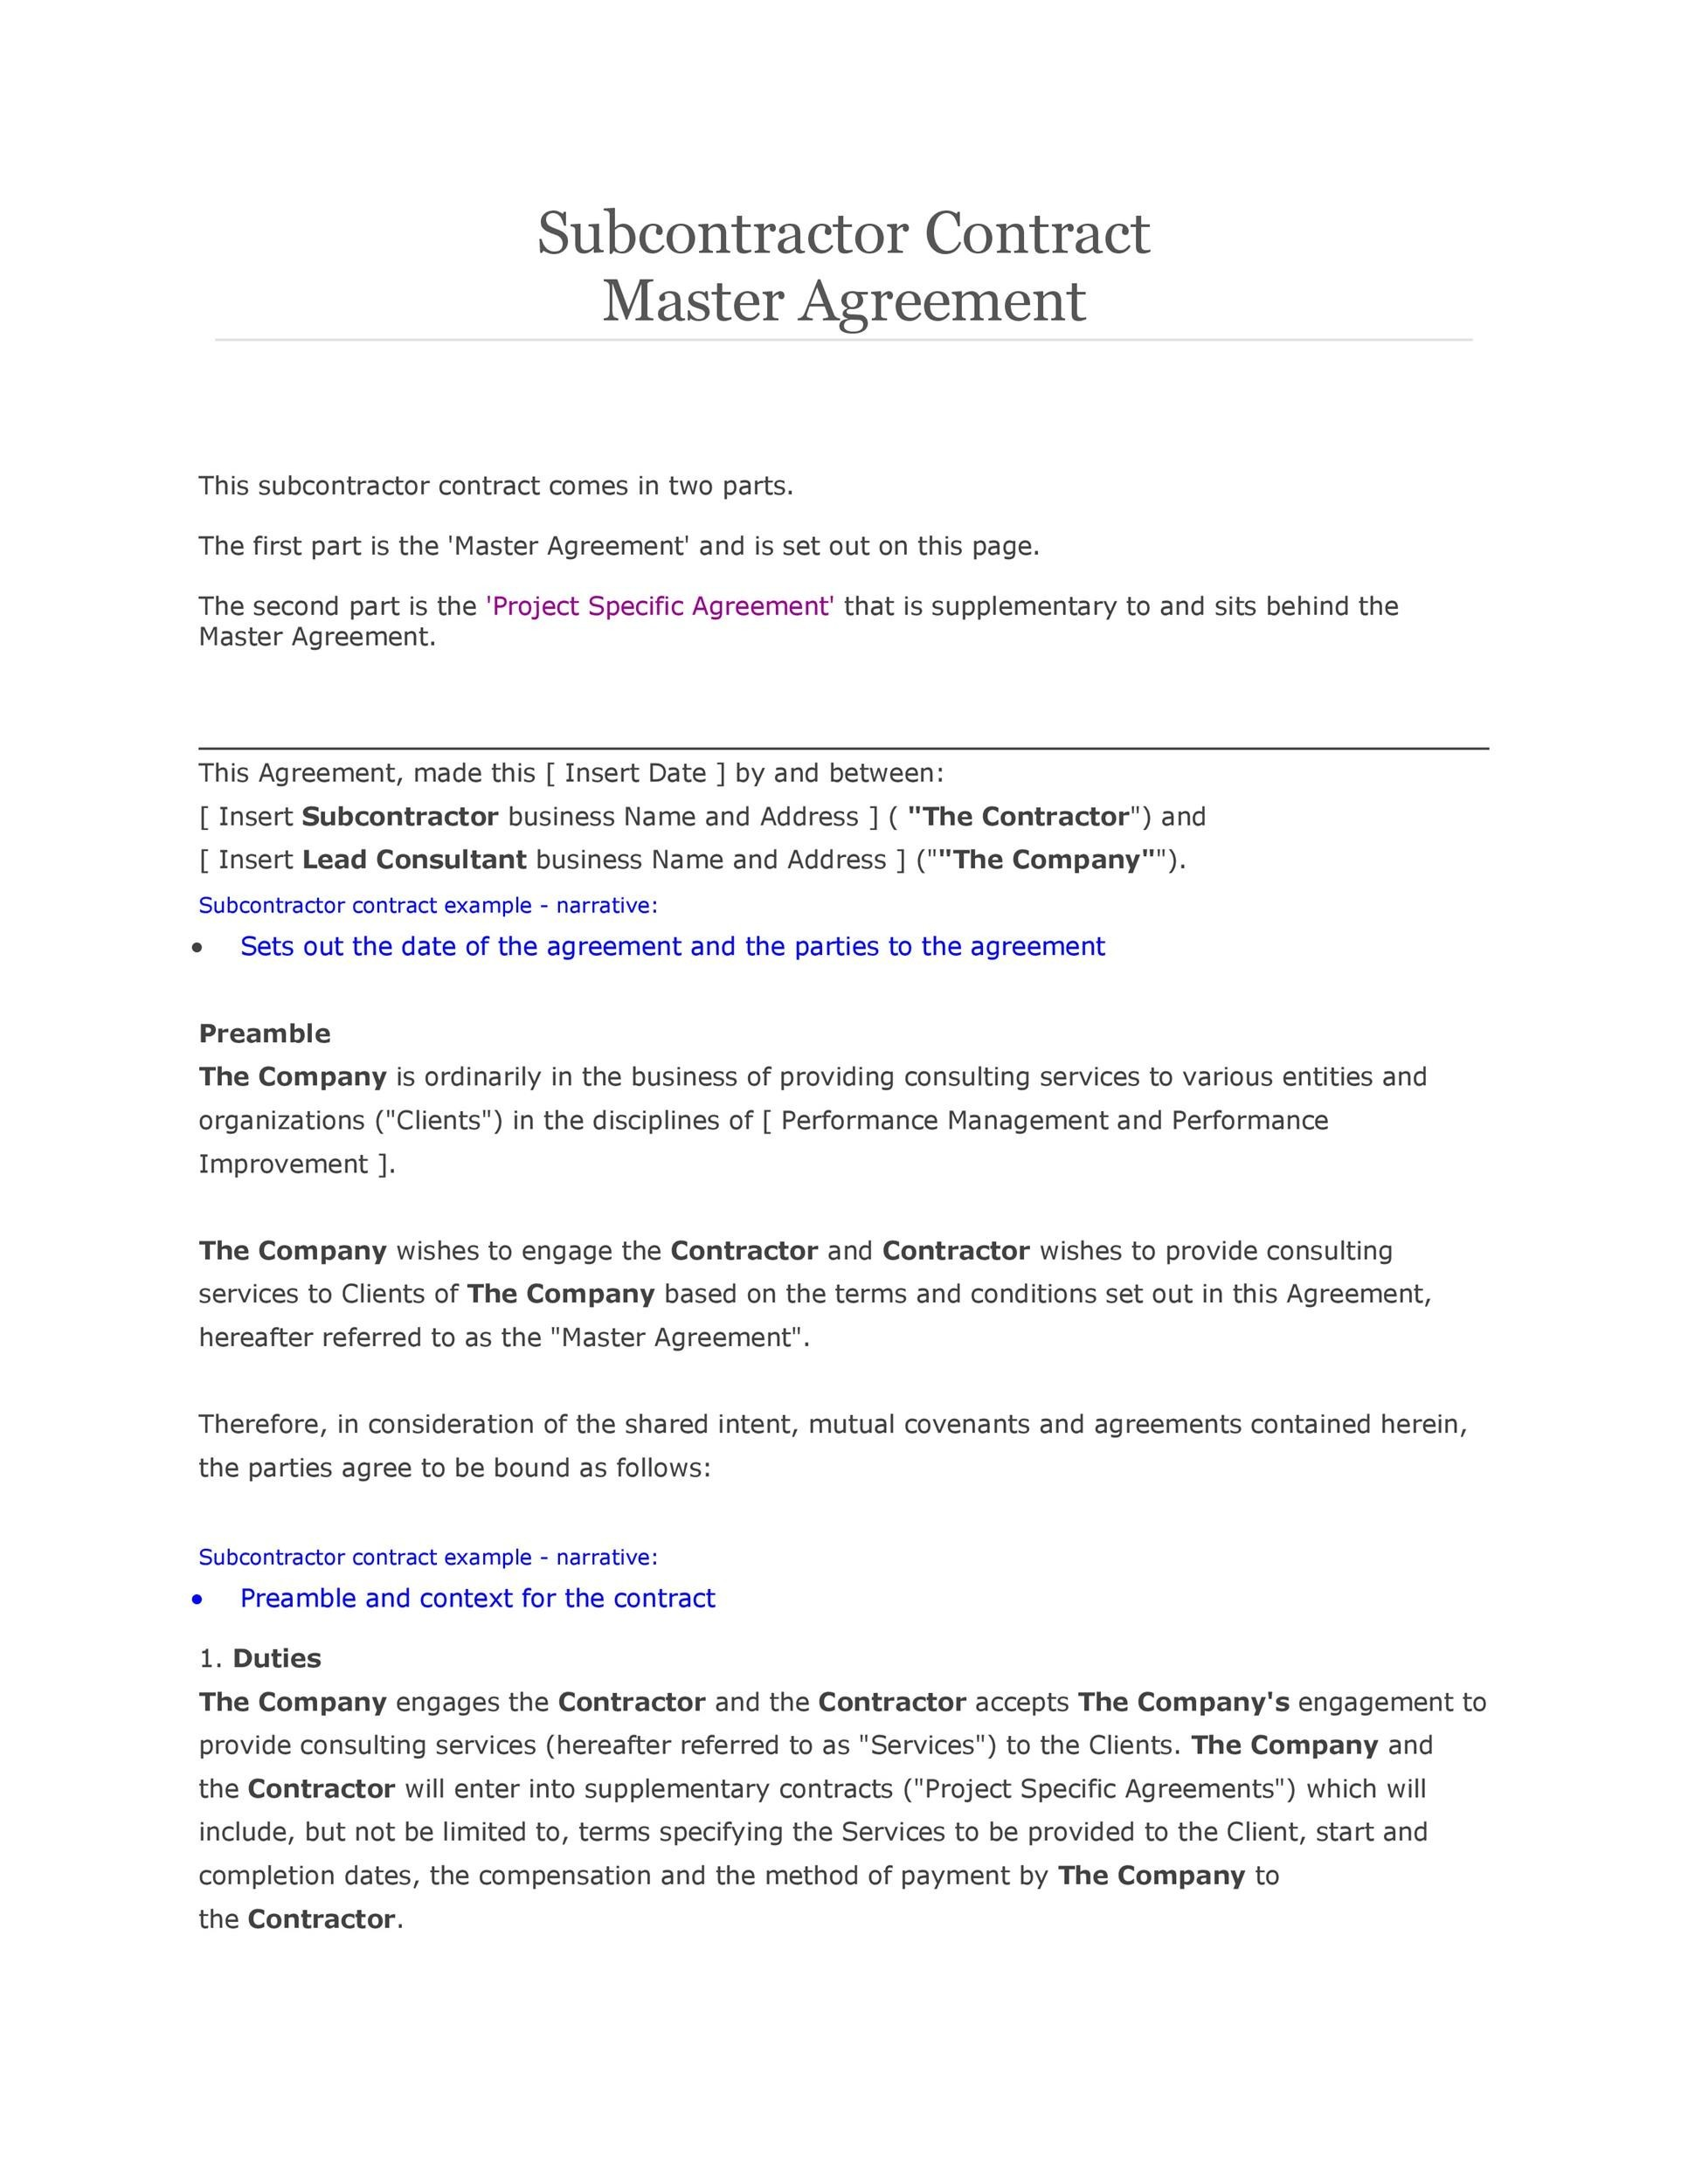 Need a Subcontractor Agreement? 39 Free Templates HERE - subcontractor agreements